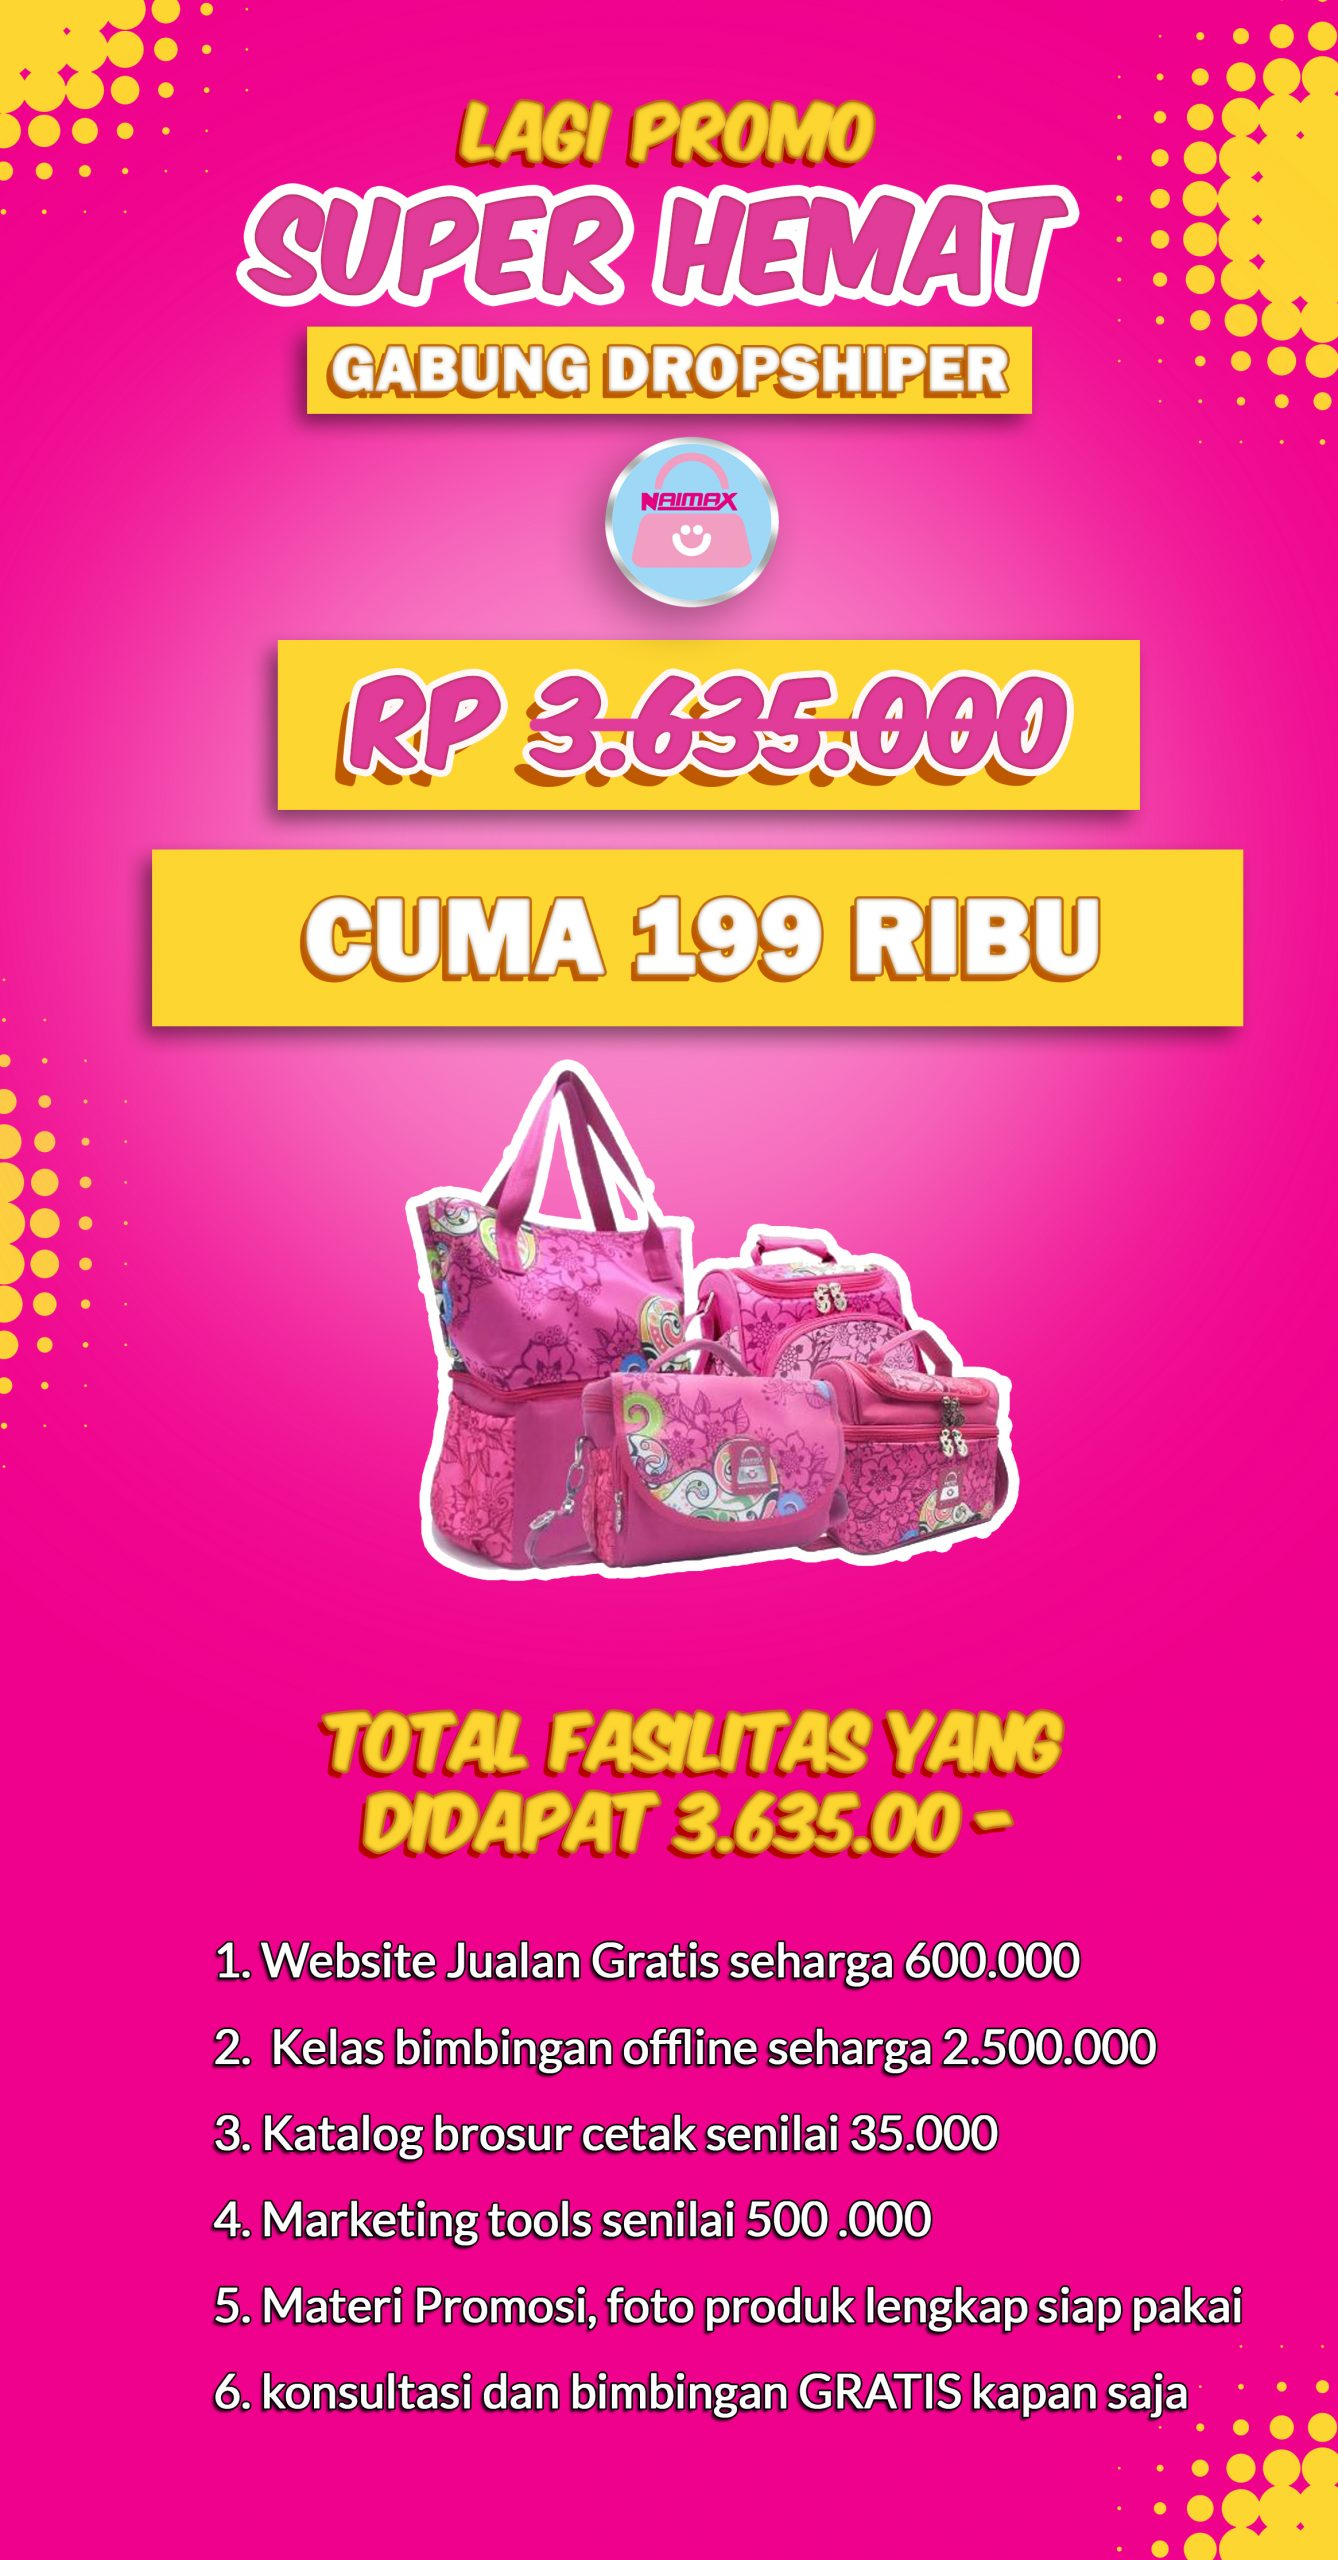 cooler bag,cooler bag asi,cooler bag gabag,cooler bag mini,cooler bag besar,cooler bag ransel,cooler bag naimax,cooler bag dialogue,cooler bag artinya,cooler bag asi gabag,cooler bag asi ransel,cooler bag adalah,cooler bag allegra,cooler bag asip,cooler bag ace hardware,cooler bag asi natural mom,cooler bag asi murah,cooler bag backpack,cooler bag bagus,cooler bag bka,cooler bag bandung,cooler bag baby go inc,cooler bag bayi,cooler bag baby,cooler bag baby 2 go,cooler bag baby scots,cooler bag custom,cooler bag carrefour,cooler bag coles,cooler bag coleman,cooler bag cheap,cooler bag camping,cooler bag cotton on,cooler bag car,cooler bag canvas,cooler bag costco,cooler bag dr brown,cooler bag dialogue baby,cooler bag di ace hardware,cooler bag dialogue review,cooler bag disney,cooler bag daiso,cooler bag daiso malaysia,cooler bag decathlon,cooler bag diy,cooler bag es krim,cooler bag electric,cooler bag effectiveness,cooler bag etsy,cooler bag ebay,cooler bag esky,cooler bag evenflo,cooler bag egypt,cooler bag ebay australia,cooler bag ebm,cooler bag fiesta,cooler bag freckles review,cooler bag freckles,cooler bag fungsi,cooler bag fishing,cooler bag fairprice,cooler bag frozen food,cooler bag for breast milk,cooler bag for spectra s1,cooler bag for baby bottles,cooler bag gabag backpack,cooler bag gabag andrea,cooler bag gabag tahan berapa lama,cooler bag gabag ransel,cooler bag gabag vs natural moms,cooler bag gabag terbaru,cooler bag gabag kelimutu,cooler bag gabag moana,cooler bag gabag nusa,cooler bag harga,cooler bag hs code,cooler bag how to use,cooler bag heavy duty,cooler bag harga grosir,cooler bag handuk,cooler bag home bargains,cooler bag how long,cooler bag hong kong,cooler bag home depot,cooler bag igloo,cooler bag insulin,cooler bag ikea,cooler bag ice cream,cooler bag ice pack,cooler bag ice,cooler bag itu apa,cooler bag in singapore,cooler bag in target,cooler bag i,cooler bag jumbo,cooler bag jogja,cooler bag japan,cooler bag jakarta,custom cooler 